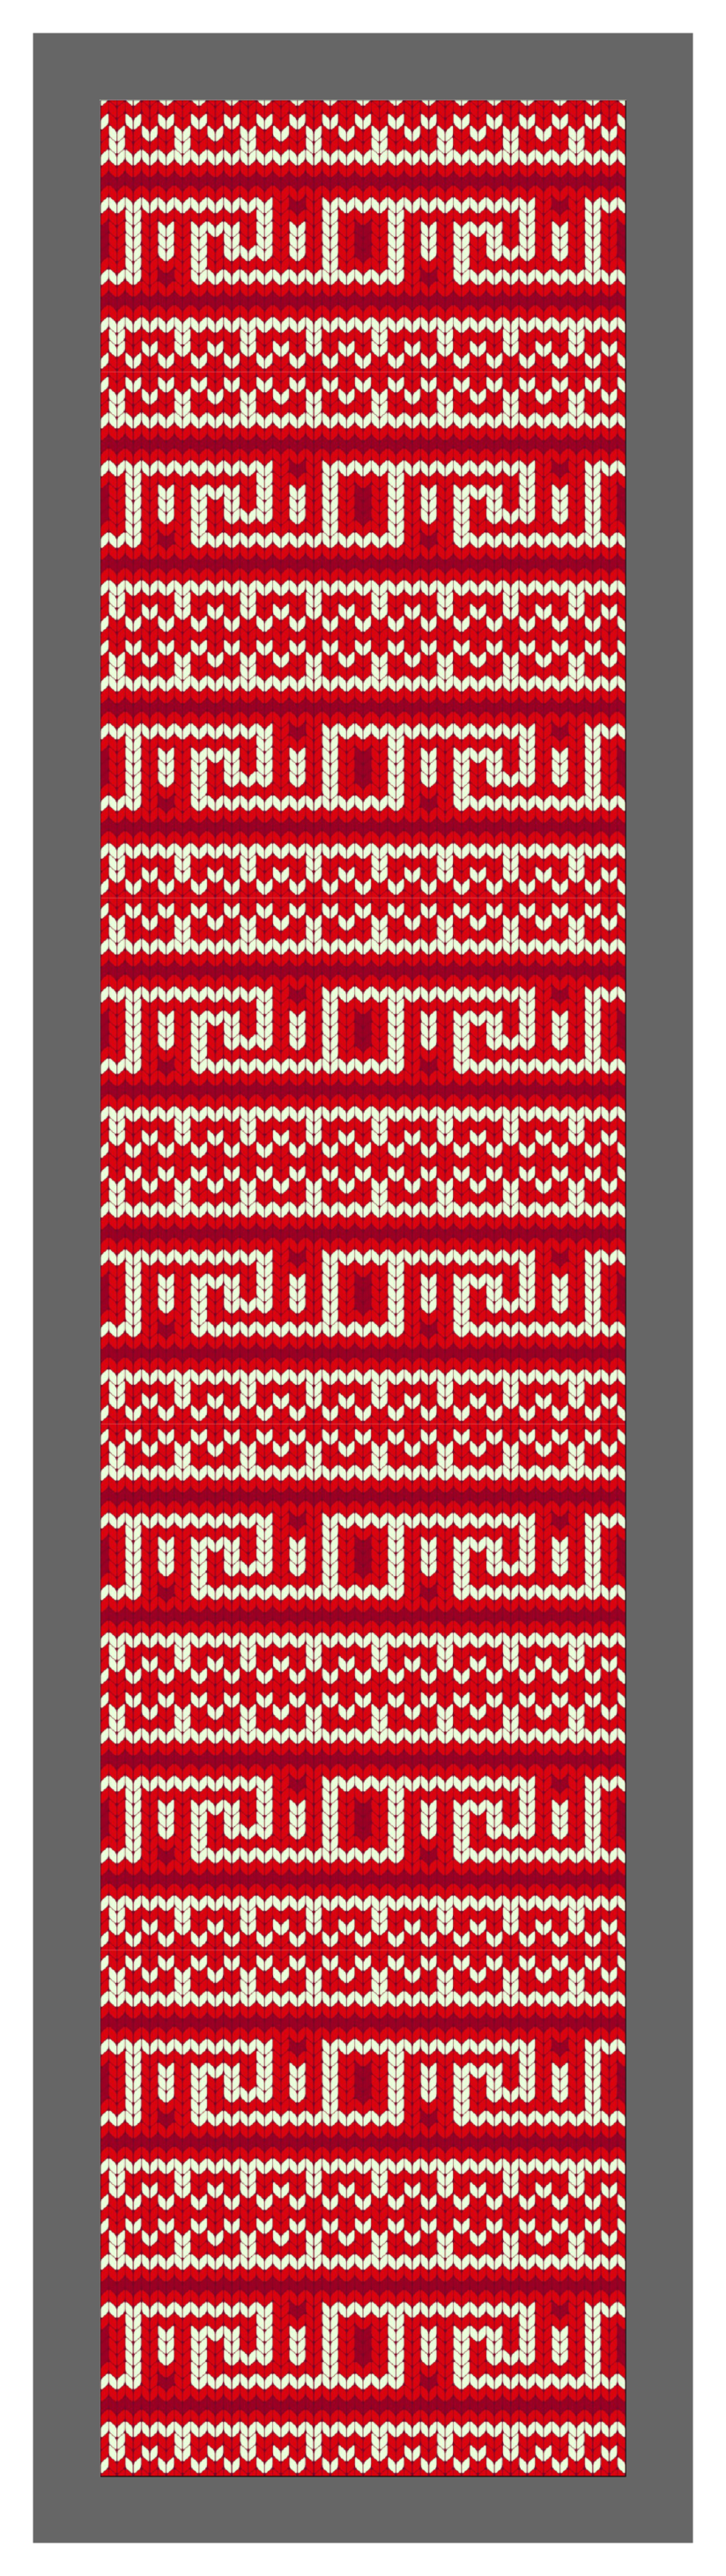 Christmas Sweater #8